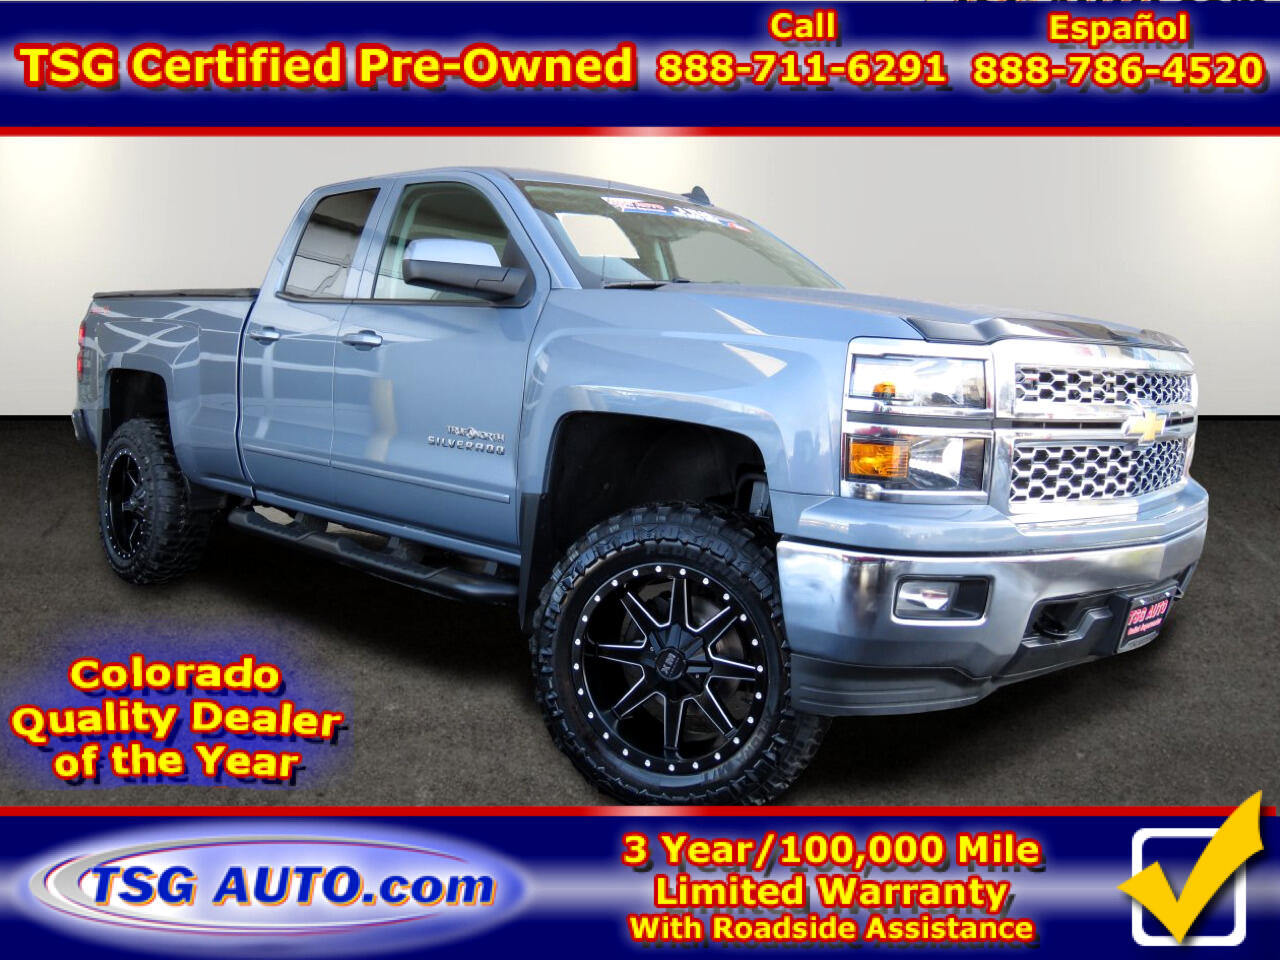 2015 Chevrolet Silverado 1500 4WD Double Cab LT W/Custom Lift/Wheels/Tires